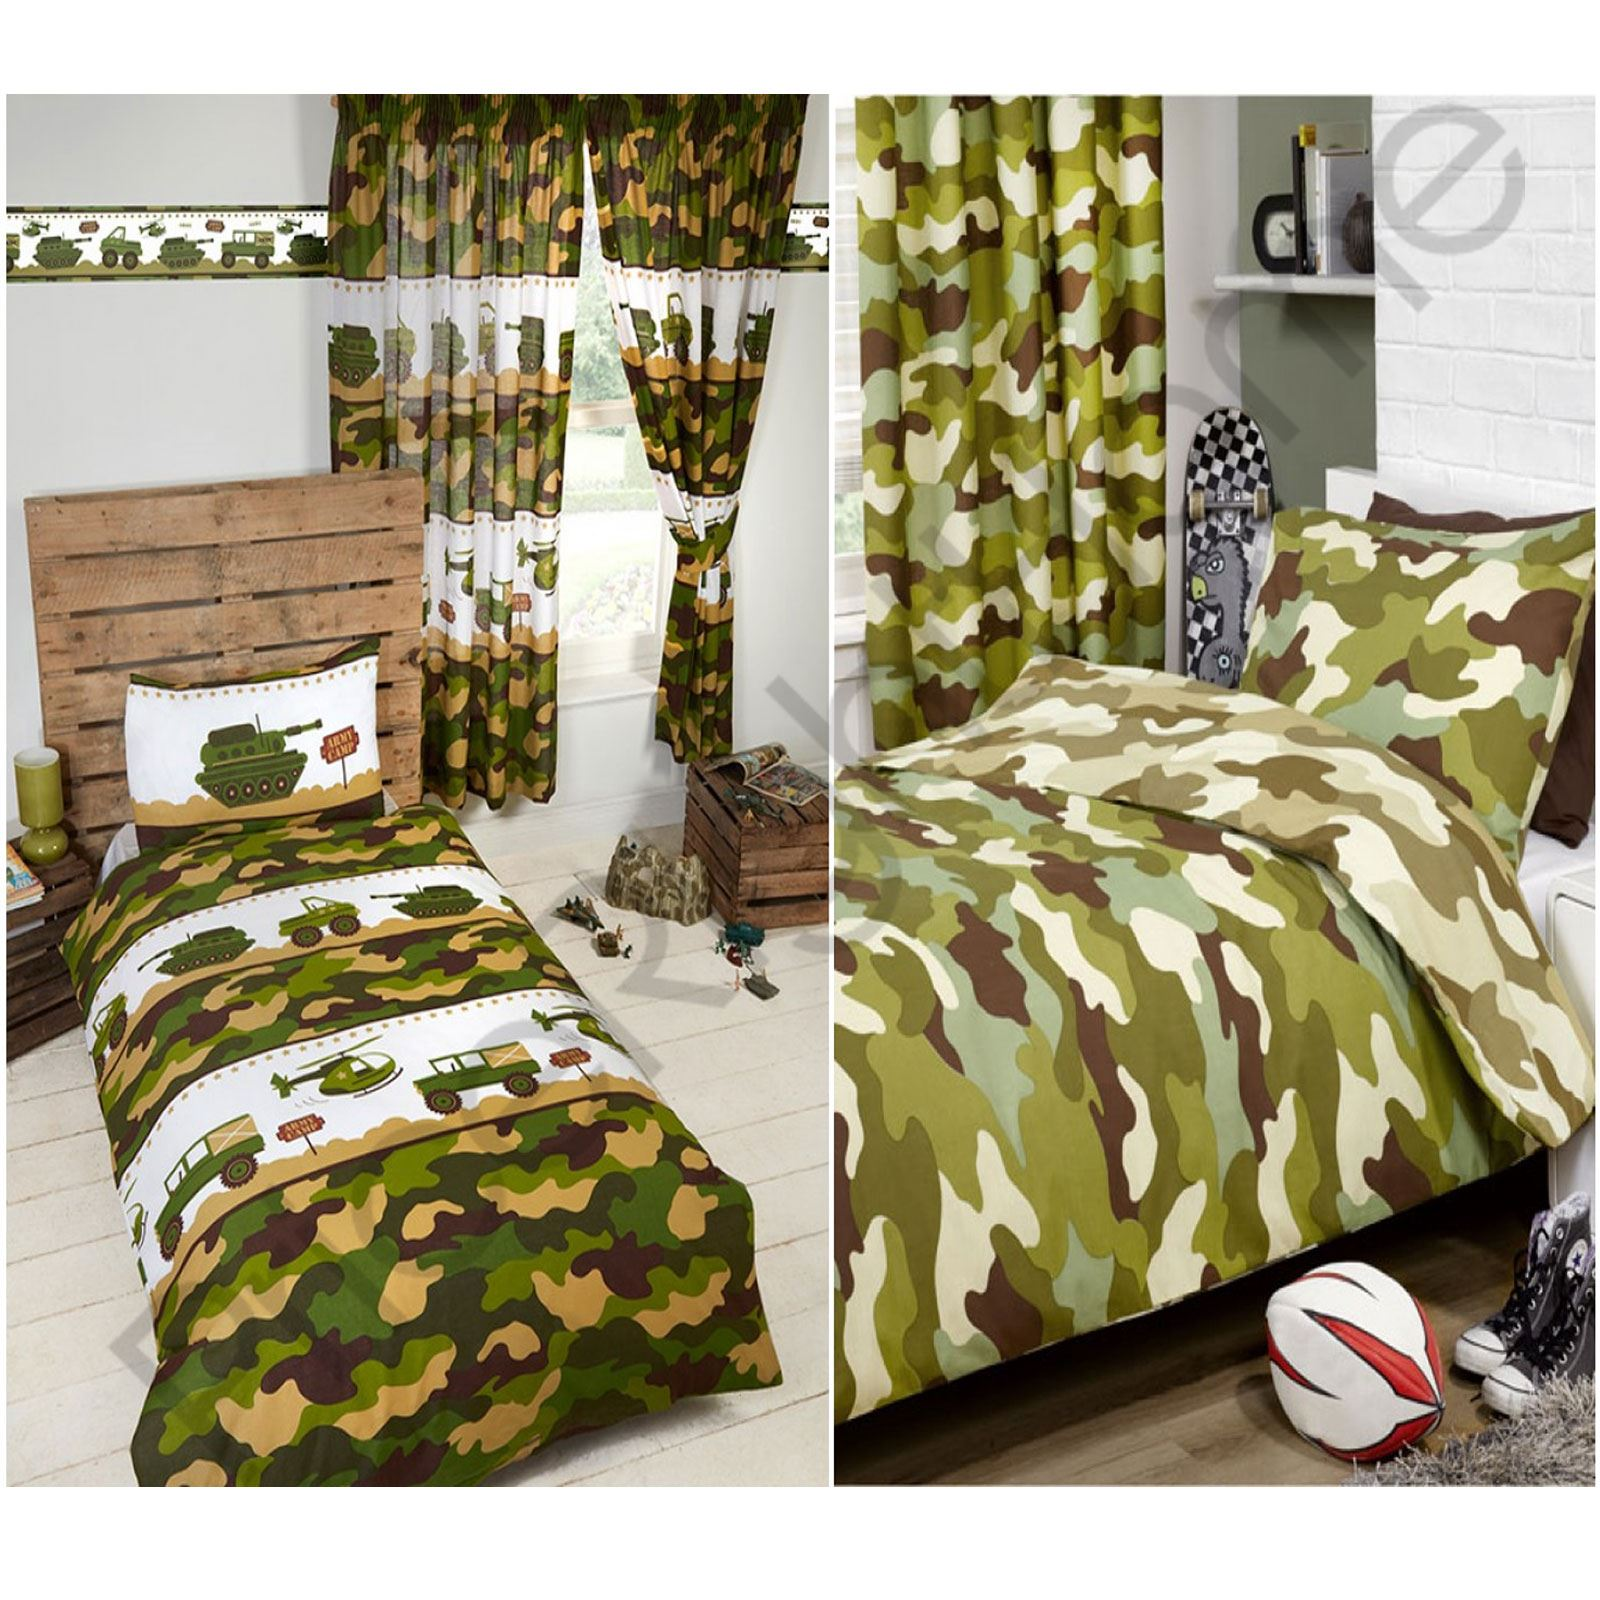 Army Camp Camouflage Duvet Covers Bedding Matching Curtains Wallpaper Border New Ebay